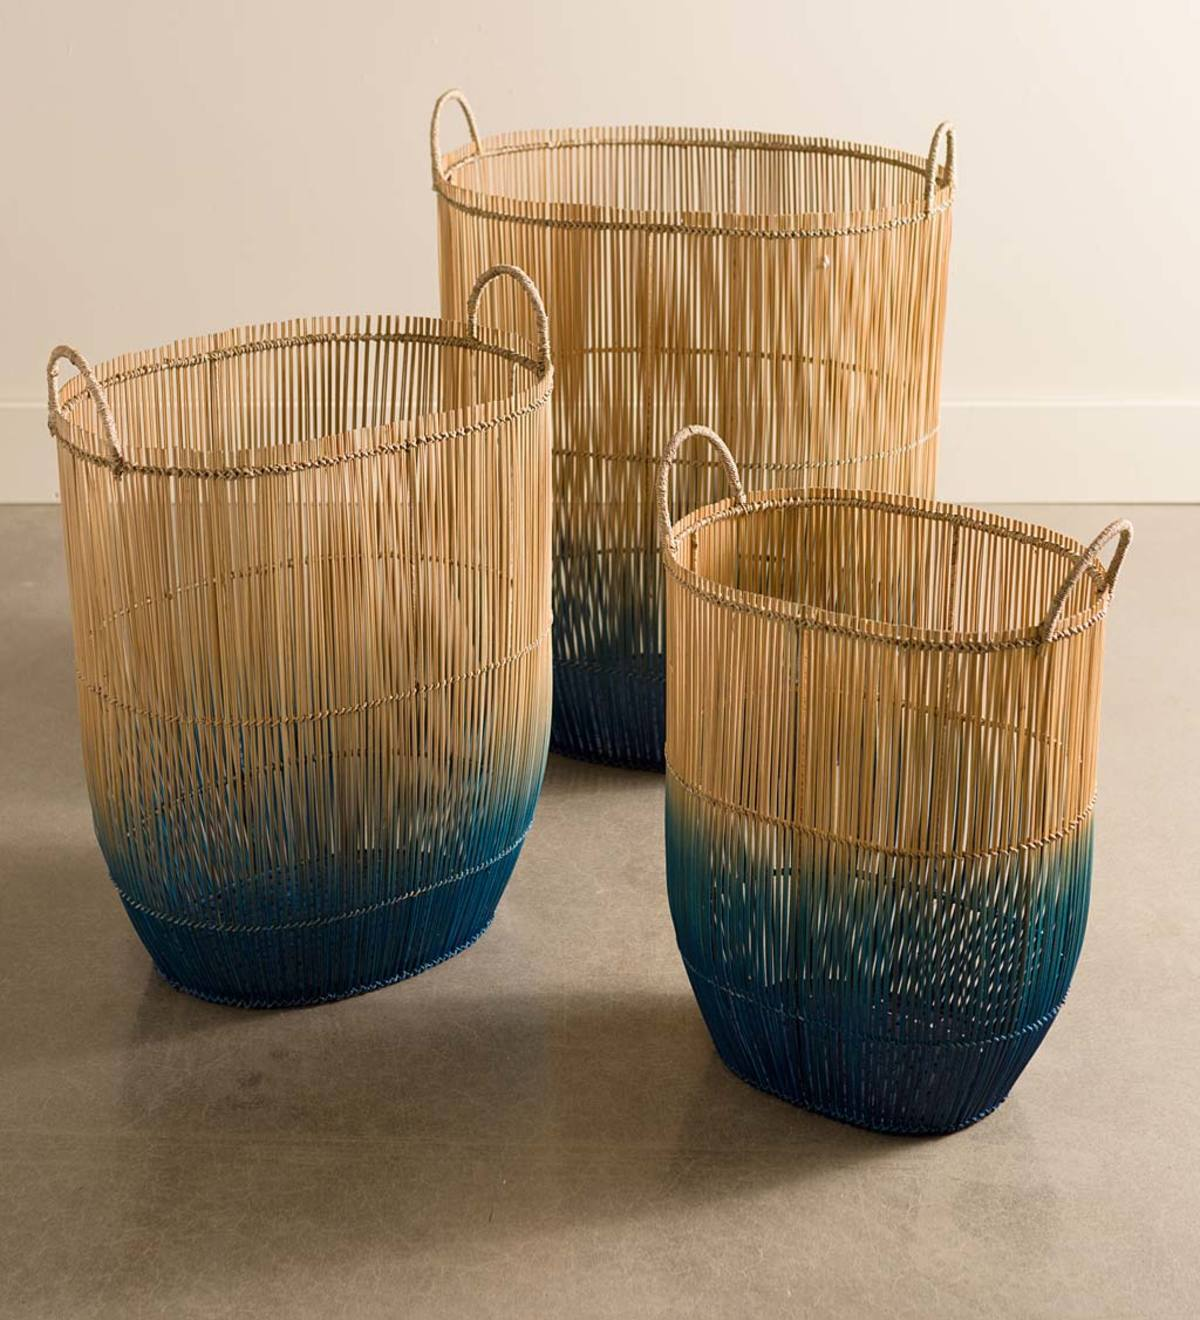 Set of 3 Ombre Nesting Baskets